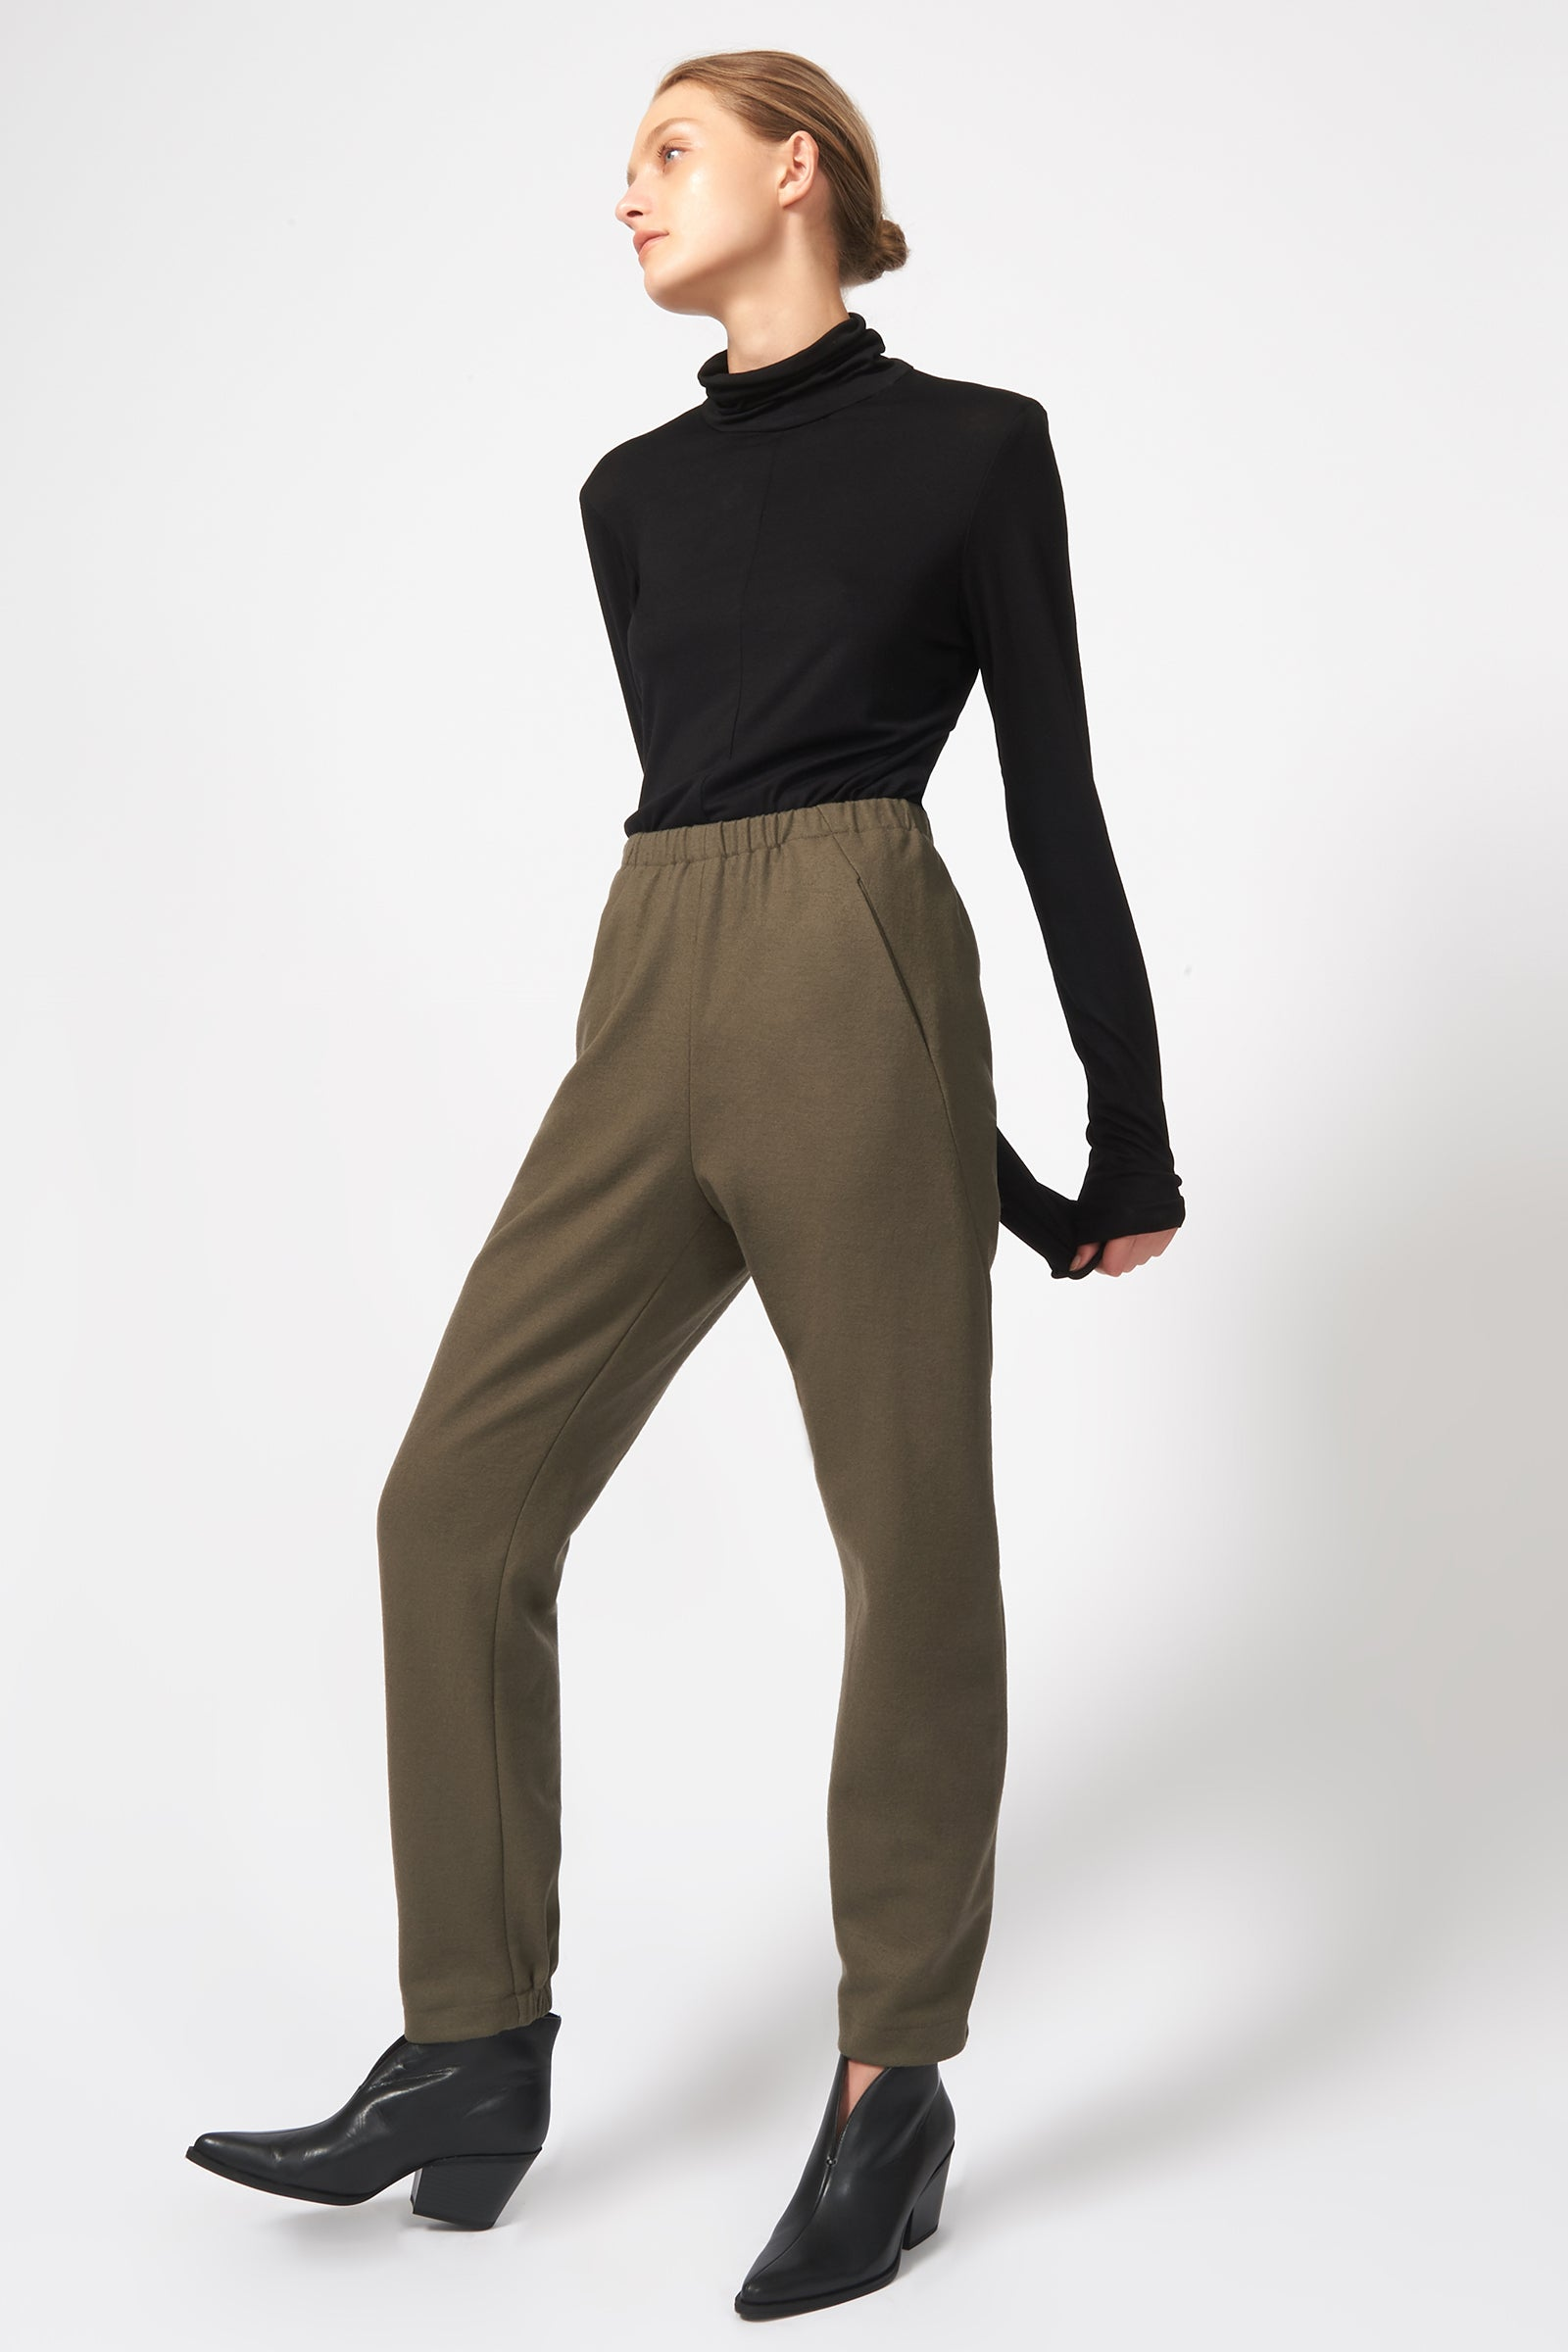 Kal Rieman Felted Jersey Angle Seam Jogger in Moss on Model Full Front Side View